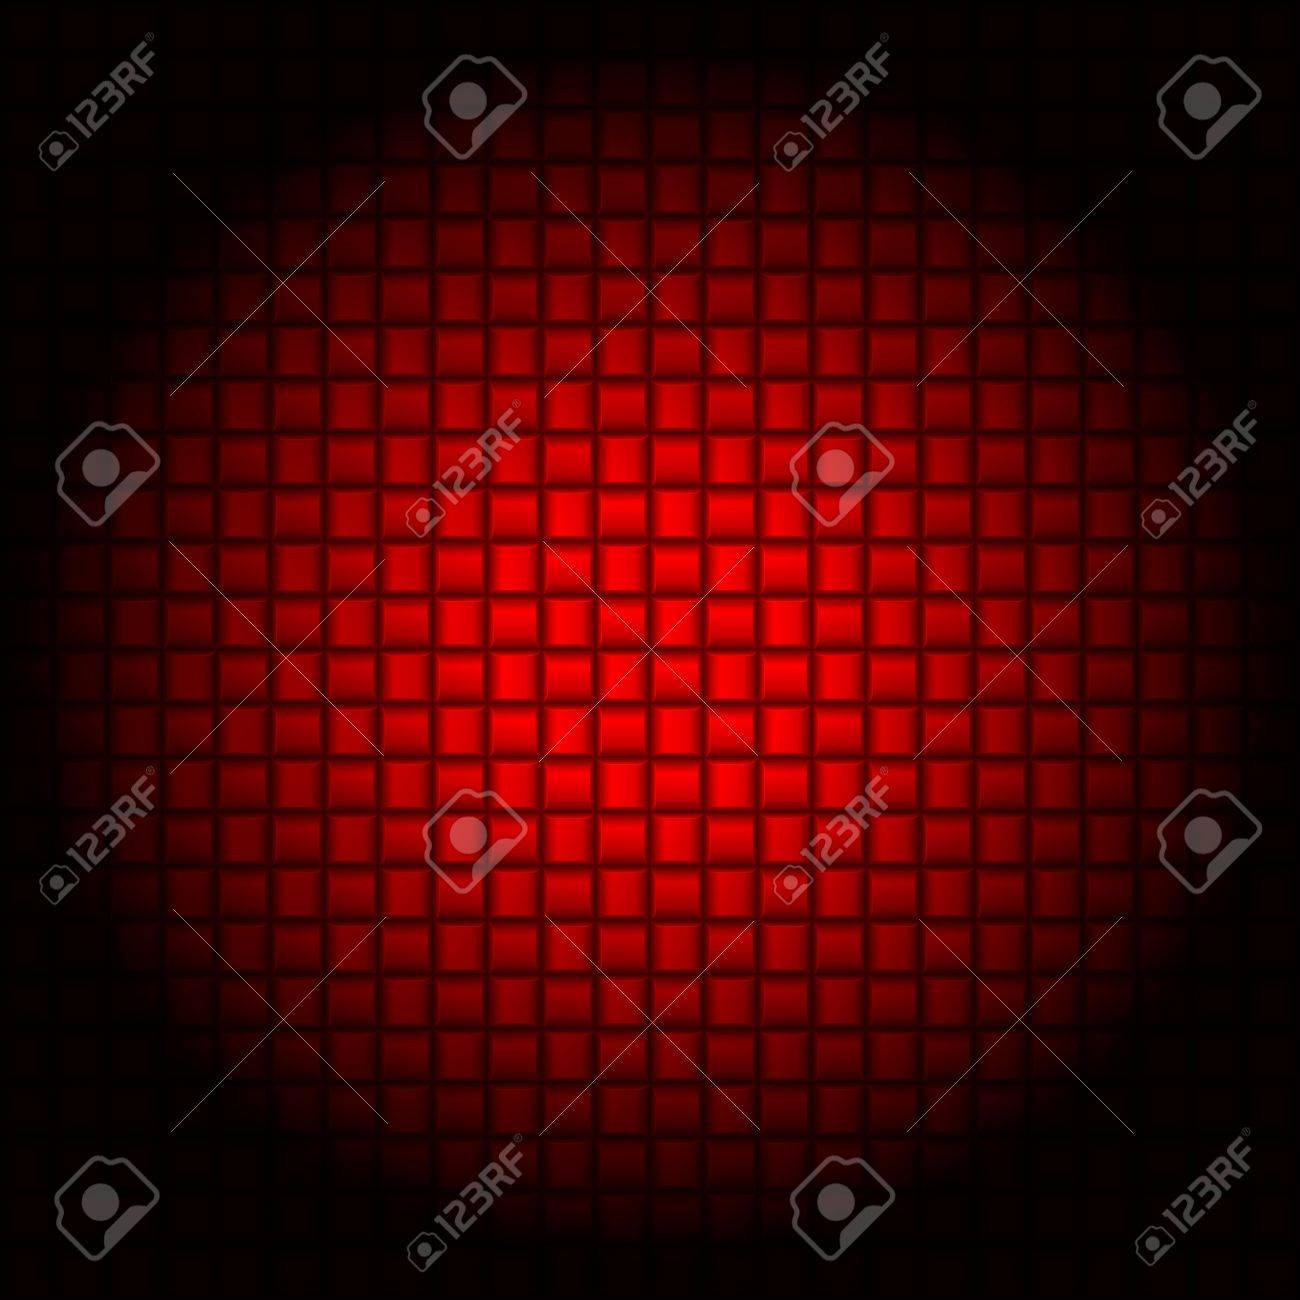 Abstract Red Cell textures. Illustration for design Stock Vector - 17620995